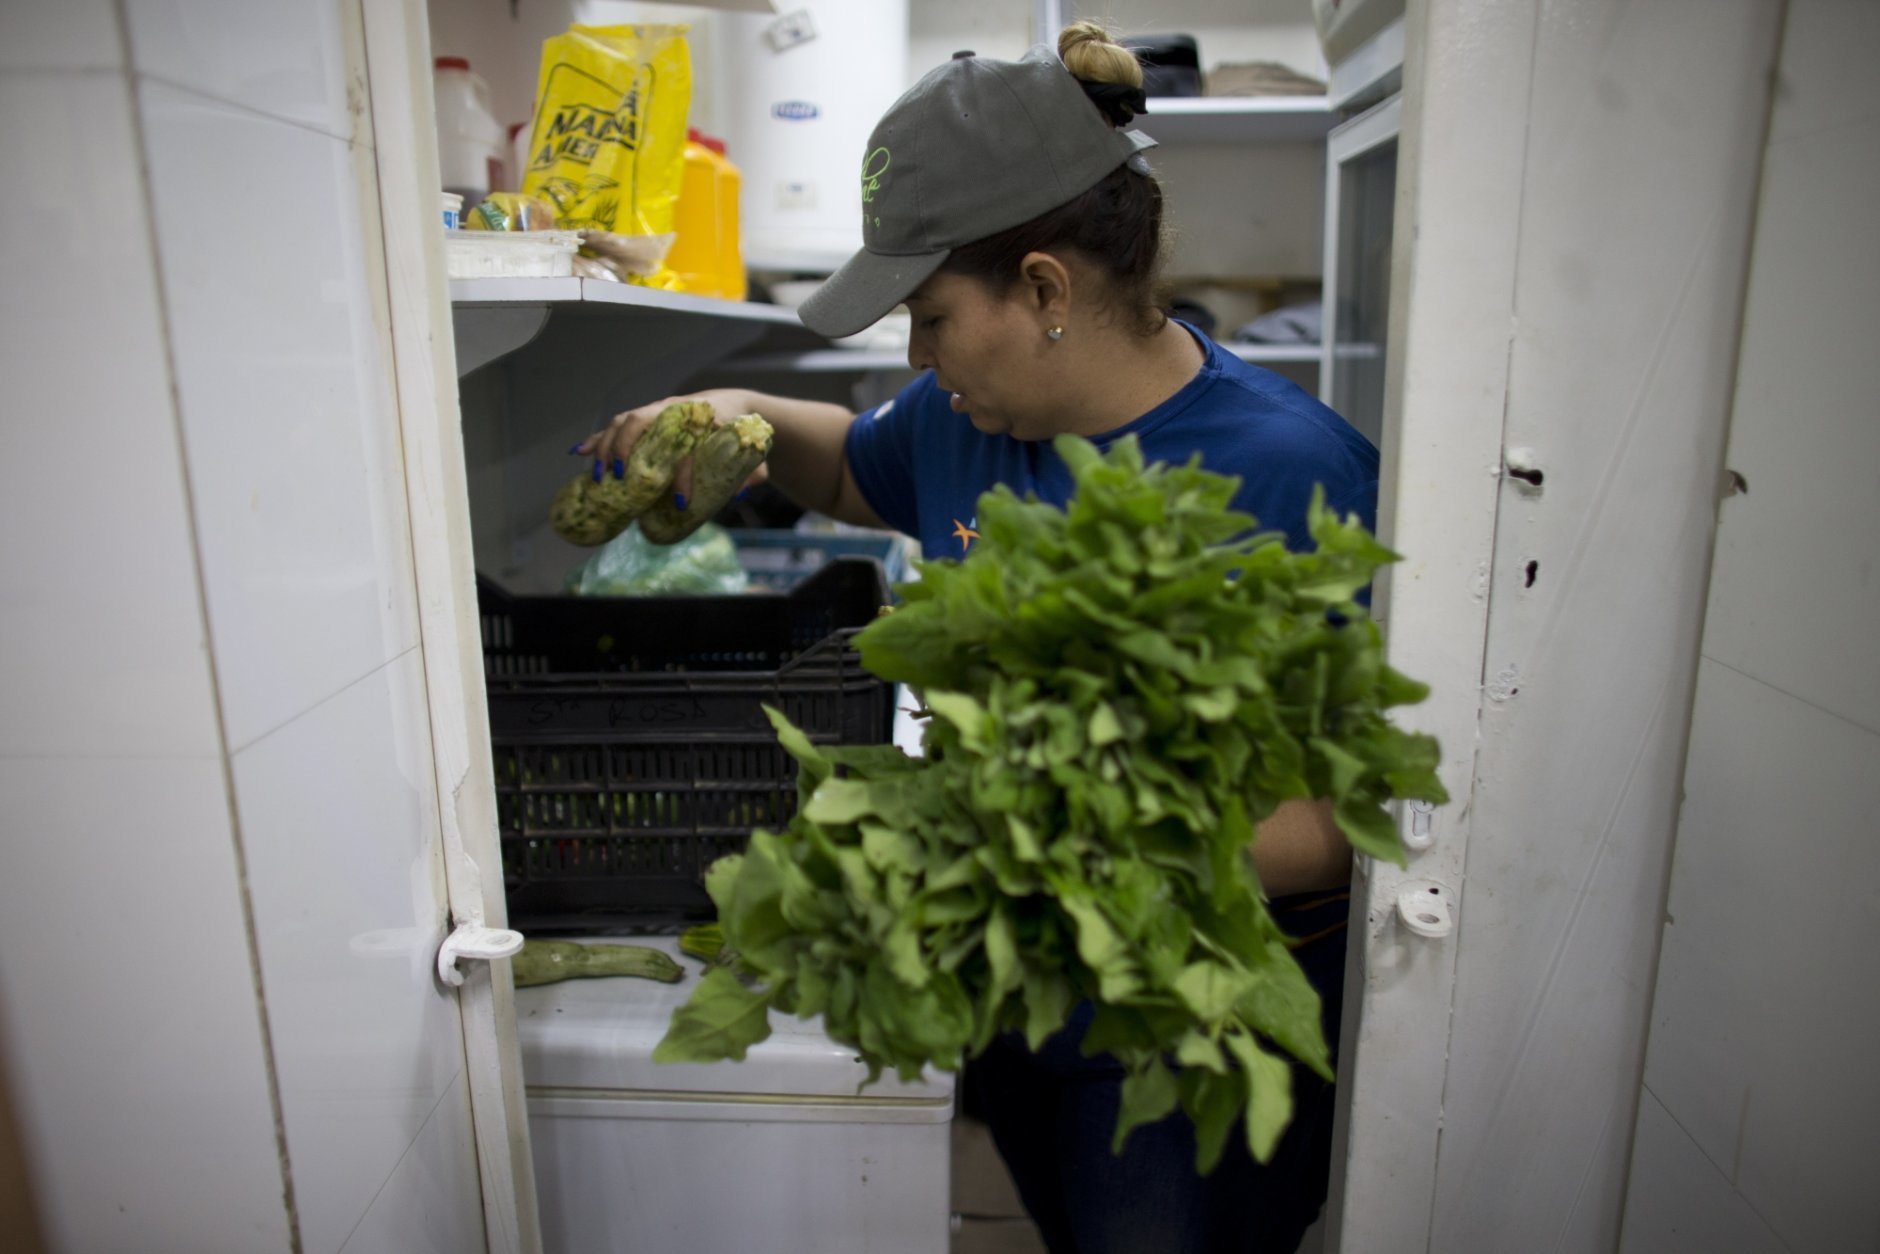 "A volunteer picks out vegetables donated by citizens whose food will spoil due to their refrigerators going without power during a blackout in Caracas, Venezuela, Monday, March 11, 2019. Hachebistro restaurant lent its kitchen to make ""arepas"" with food donated by residents whose refrigerators were without power, to be distributed to foundations, hospitals and those most in need. (AP Photo/Ariana Cubillos)"